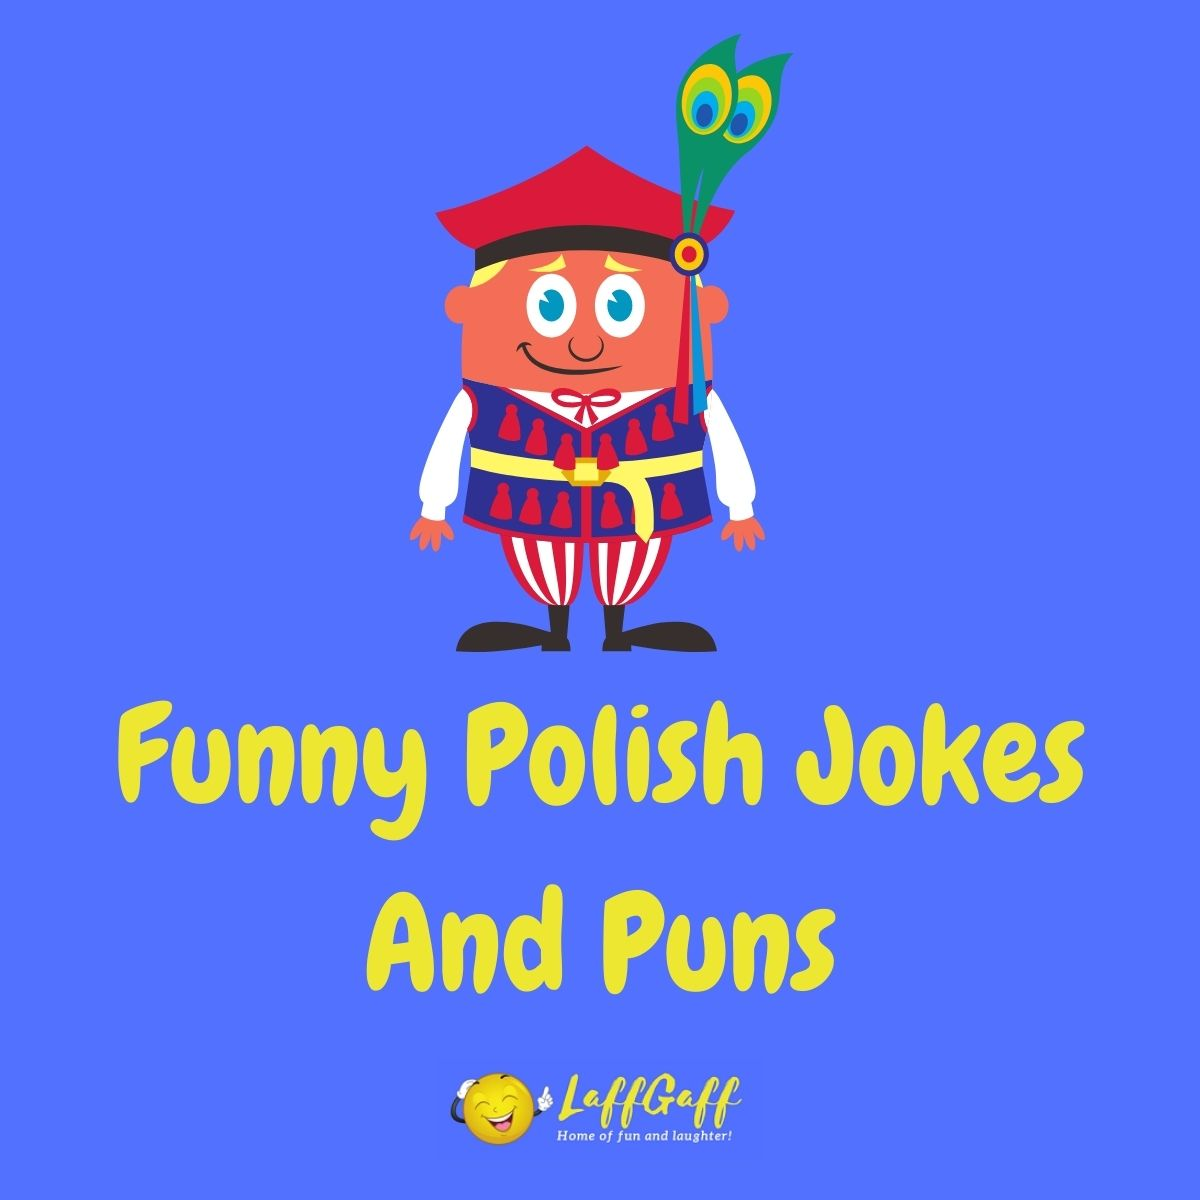 Featured image for a page of funny Polish jokes and puns.